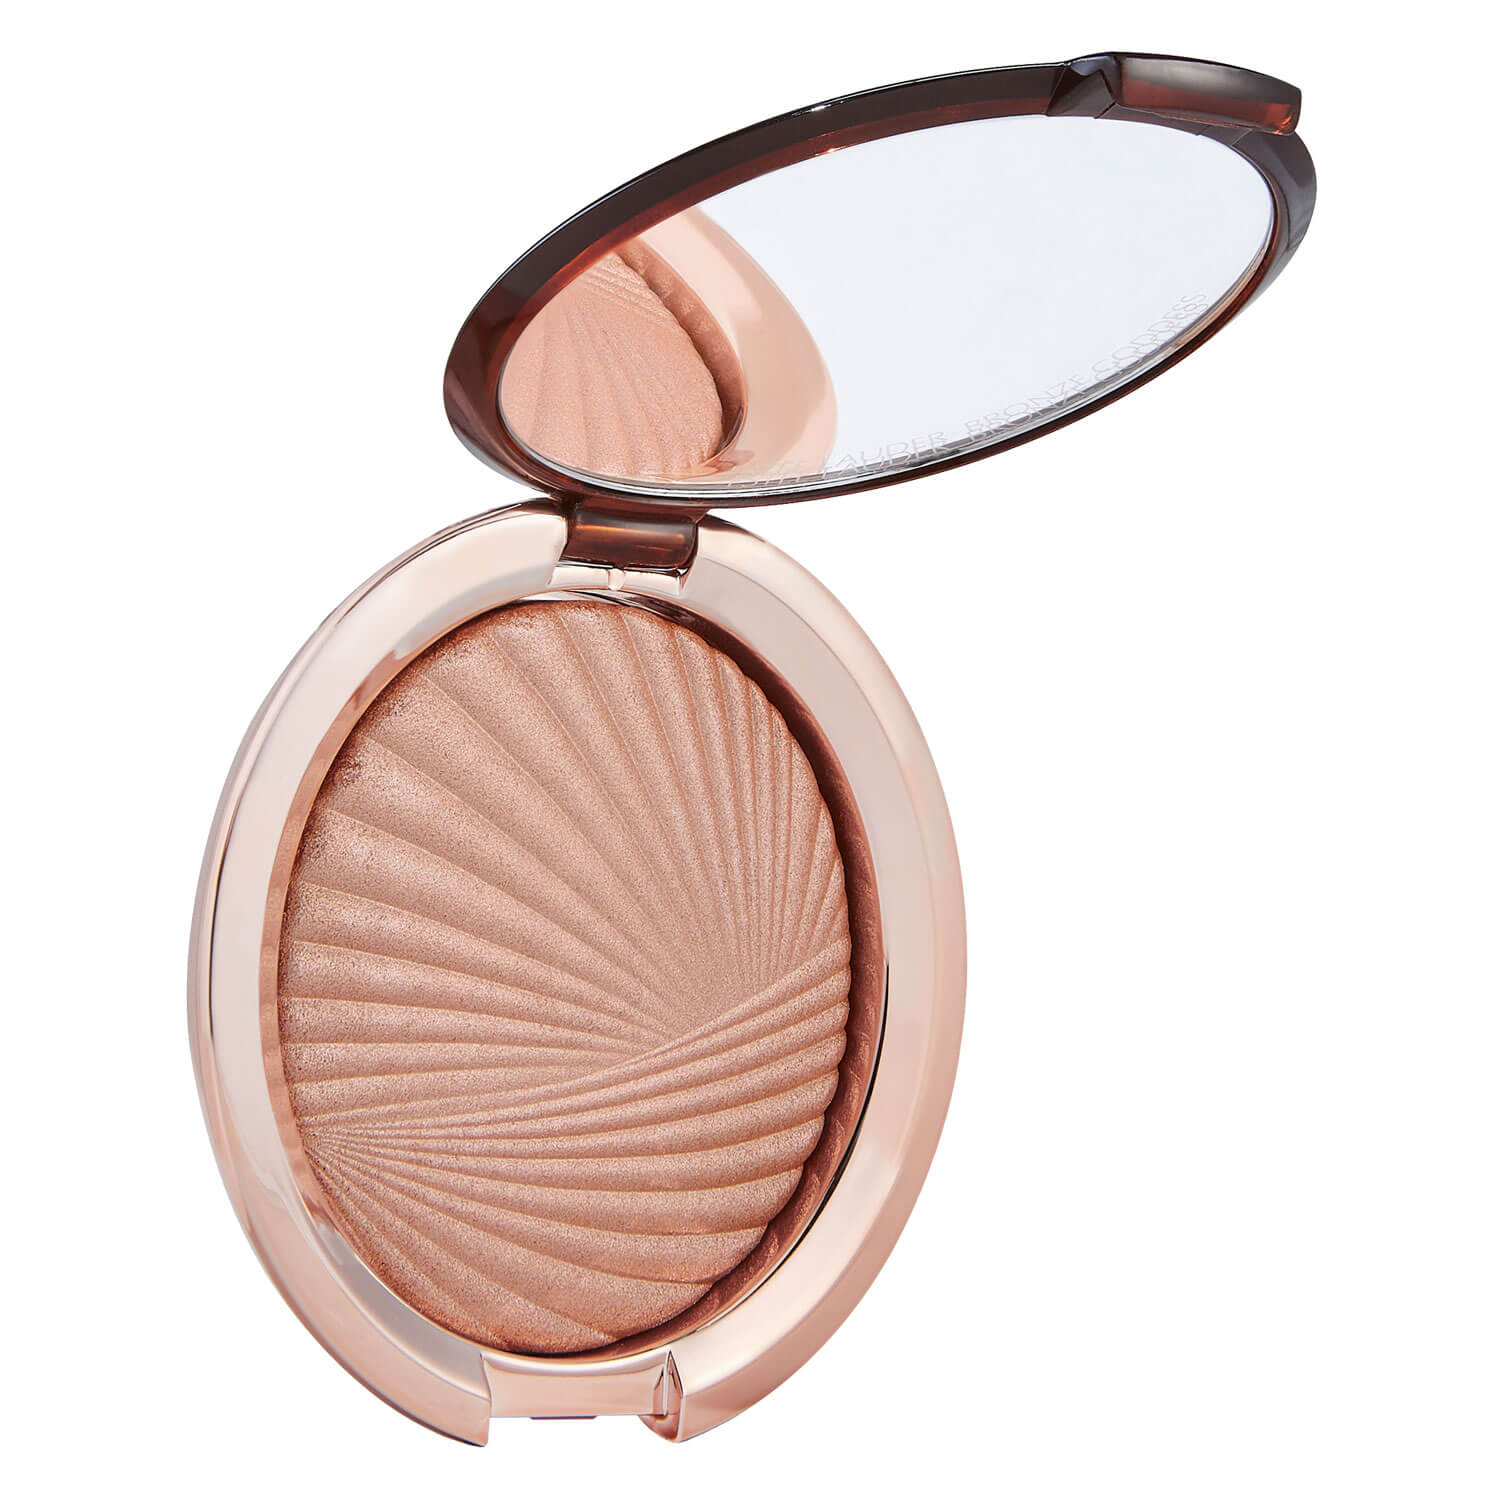 Bronze Goddess - Azur Highlighting Powder Gelée Solar Crush